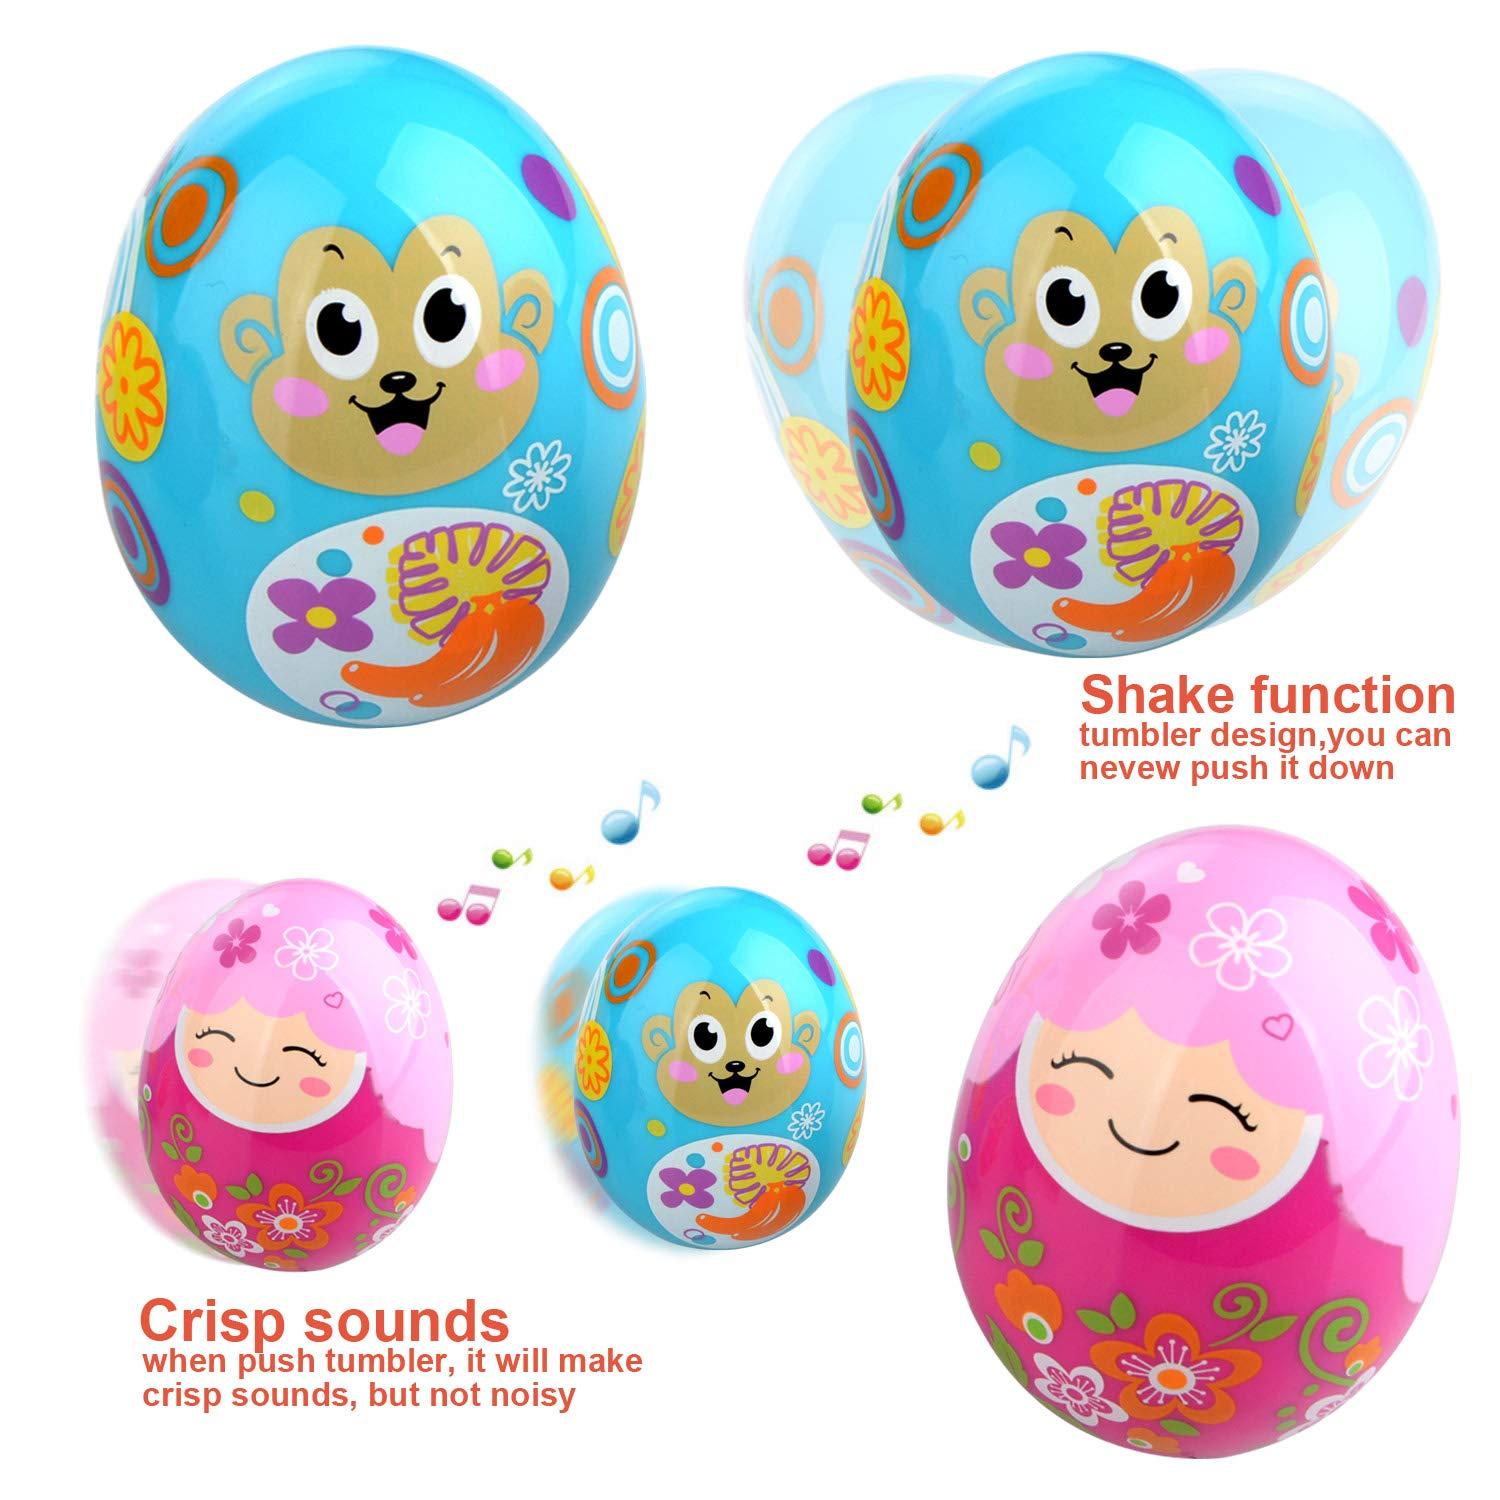 Kids Musical Instruments, Early Learning Musical Toys for Kids, Toddlers, Preschool Education Musical Toys Set Including Bell Drum Rattle Maracas Castanets Egg Shaker RTWAY